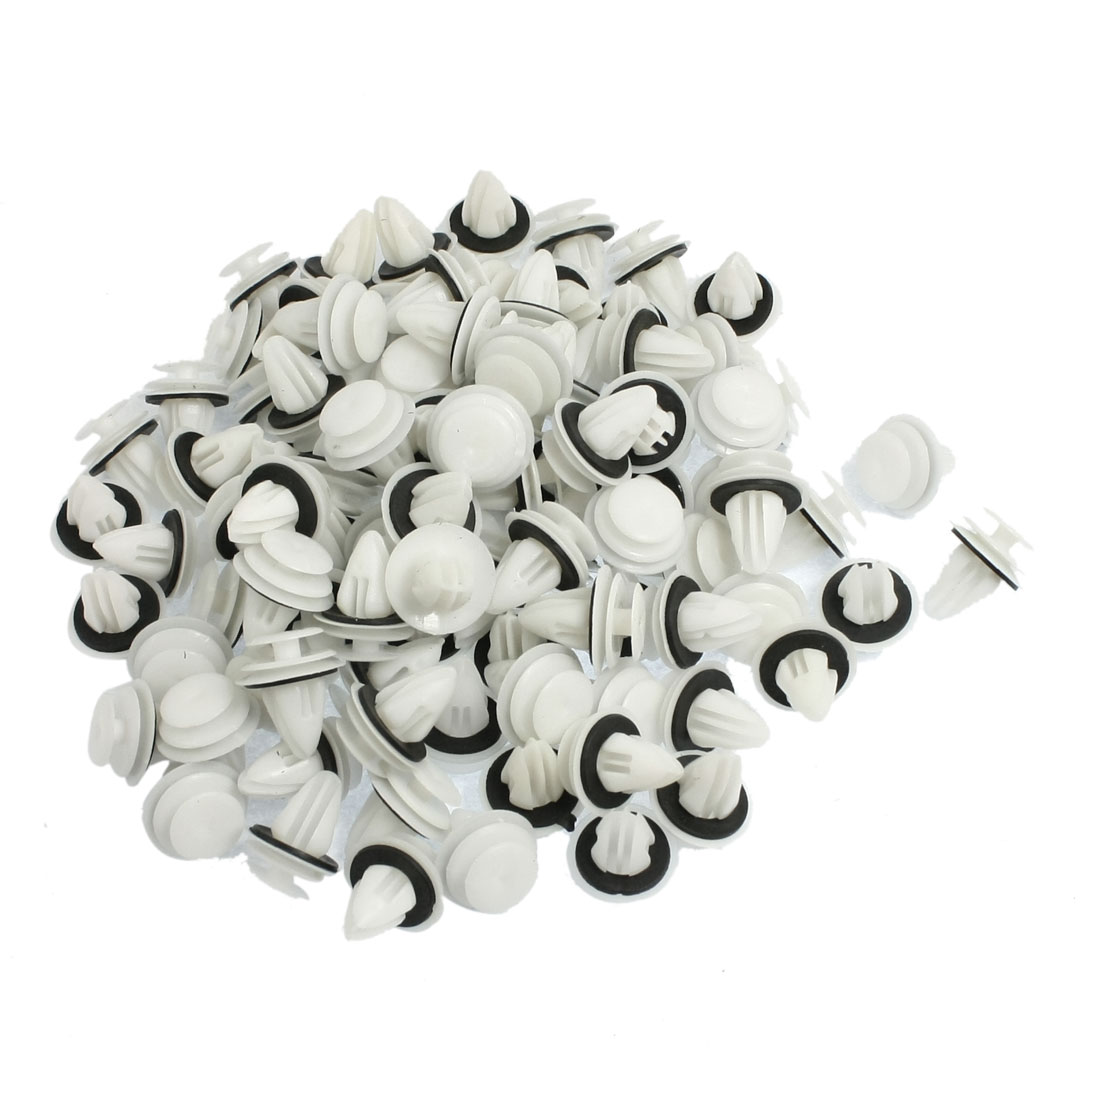 100 Pcs Car 9mm Hole White Plastic Rivet Fastener Fender Bumper Push Clip